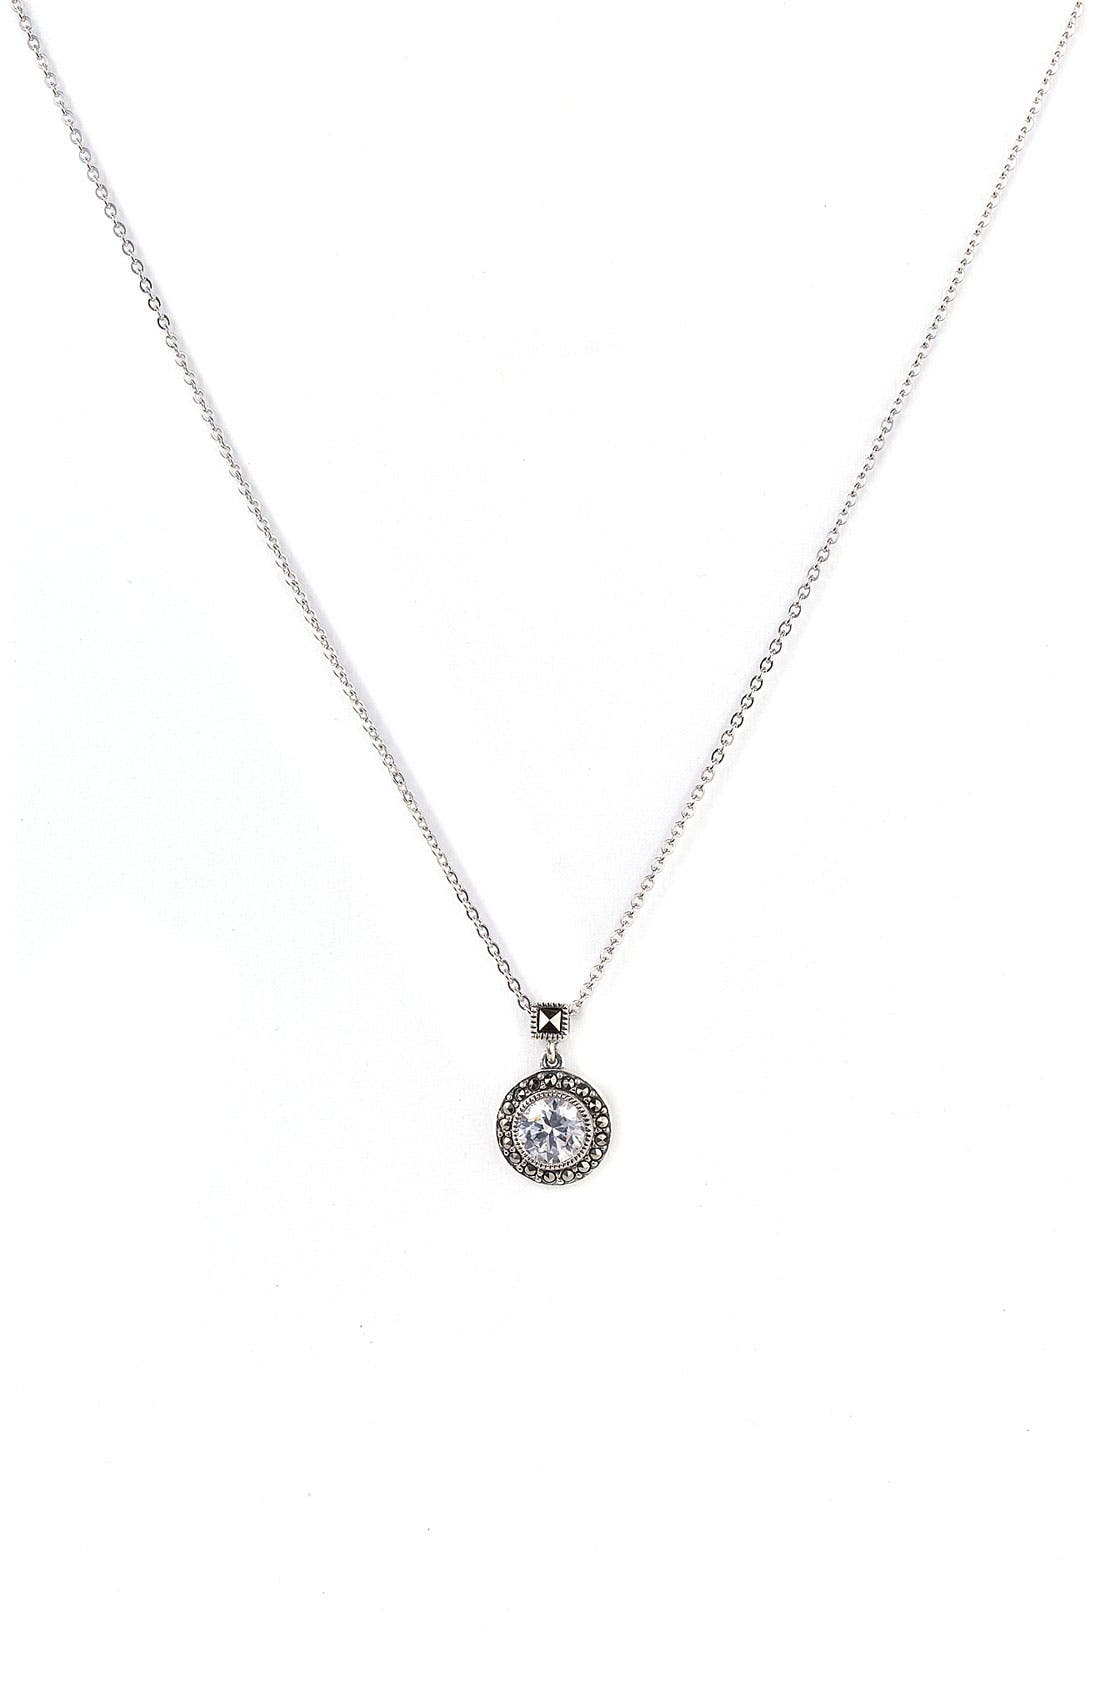 Main Image - Judith Jack 'Small Moonshadow' Necklace